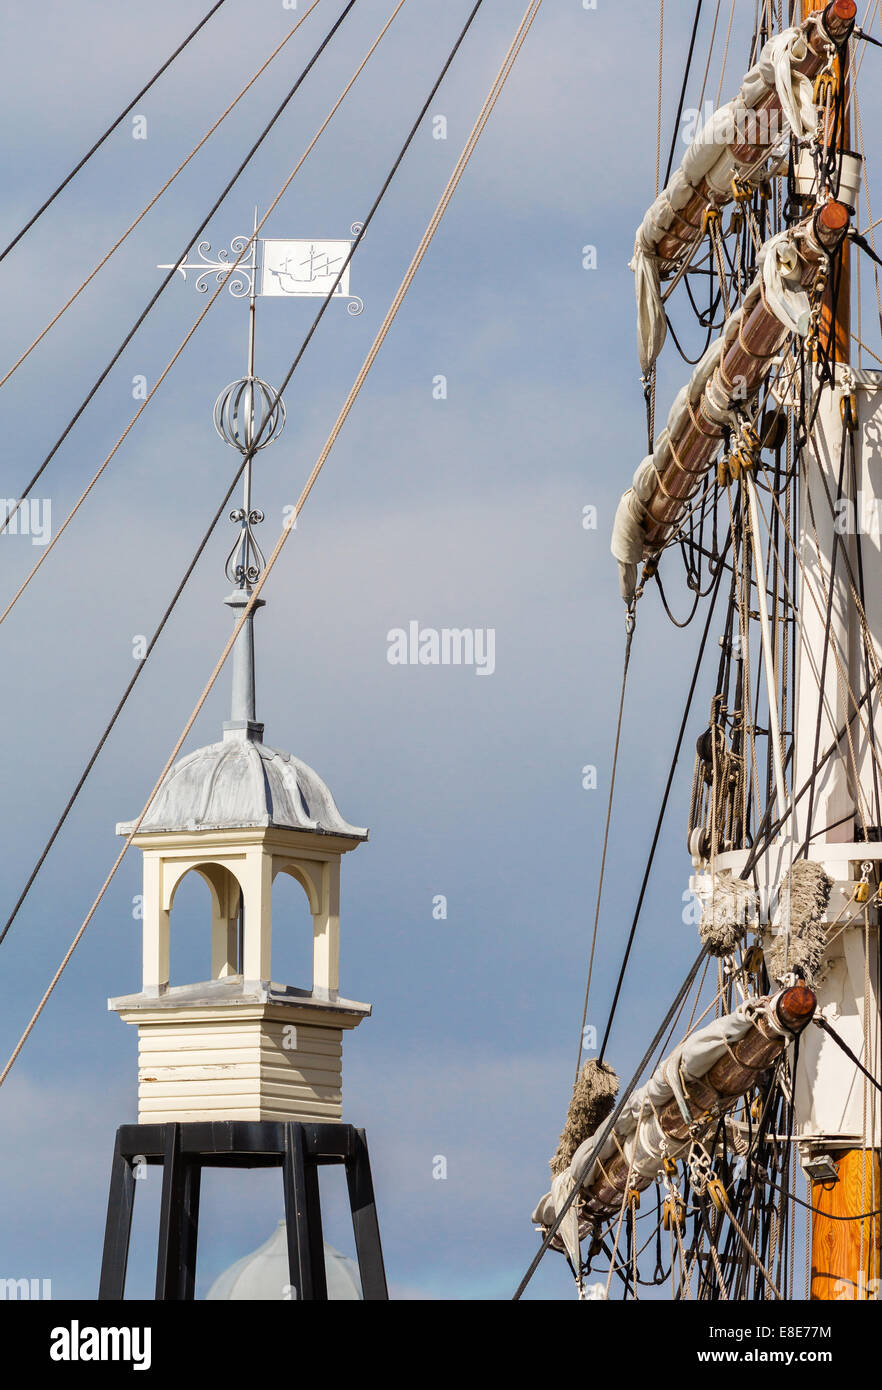 Mast and rigging of a tall sailing ship and bell tower and wind vain by the Lloyds Building on Bristol's floating - Stock Image